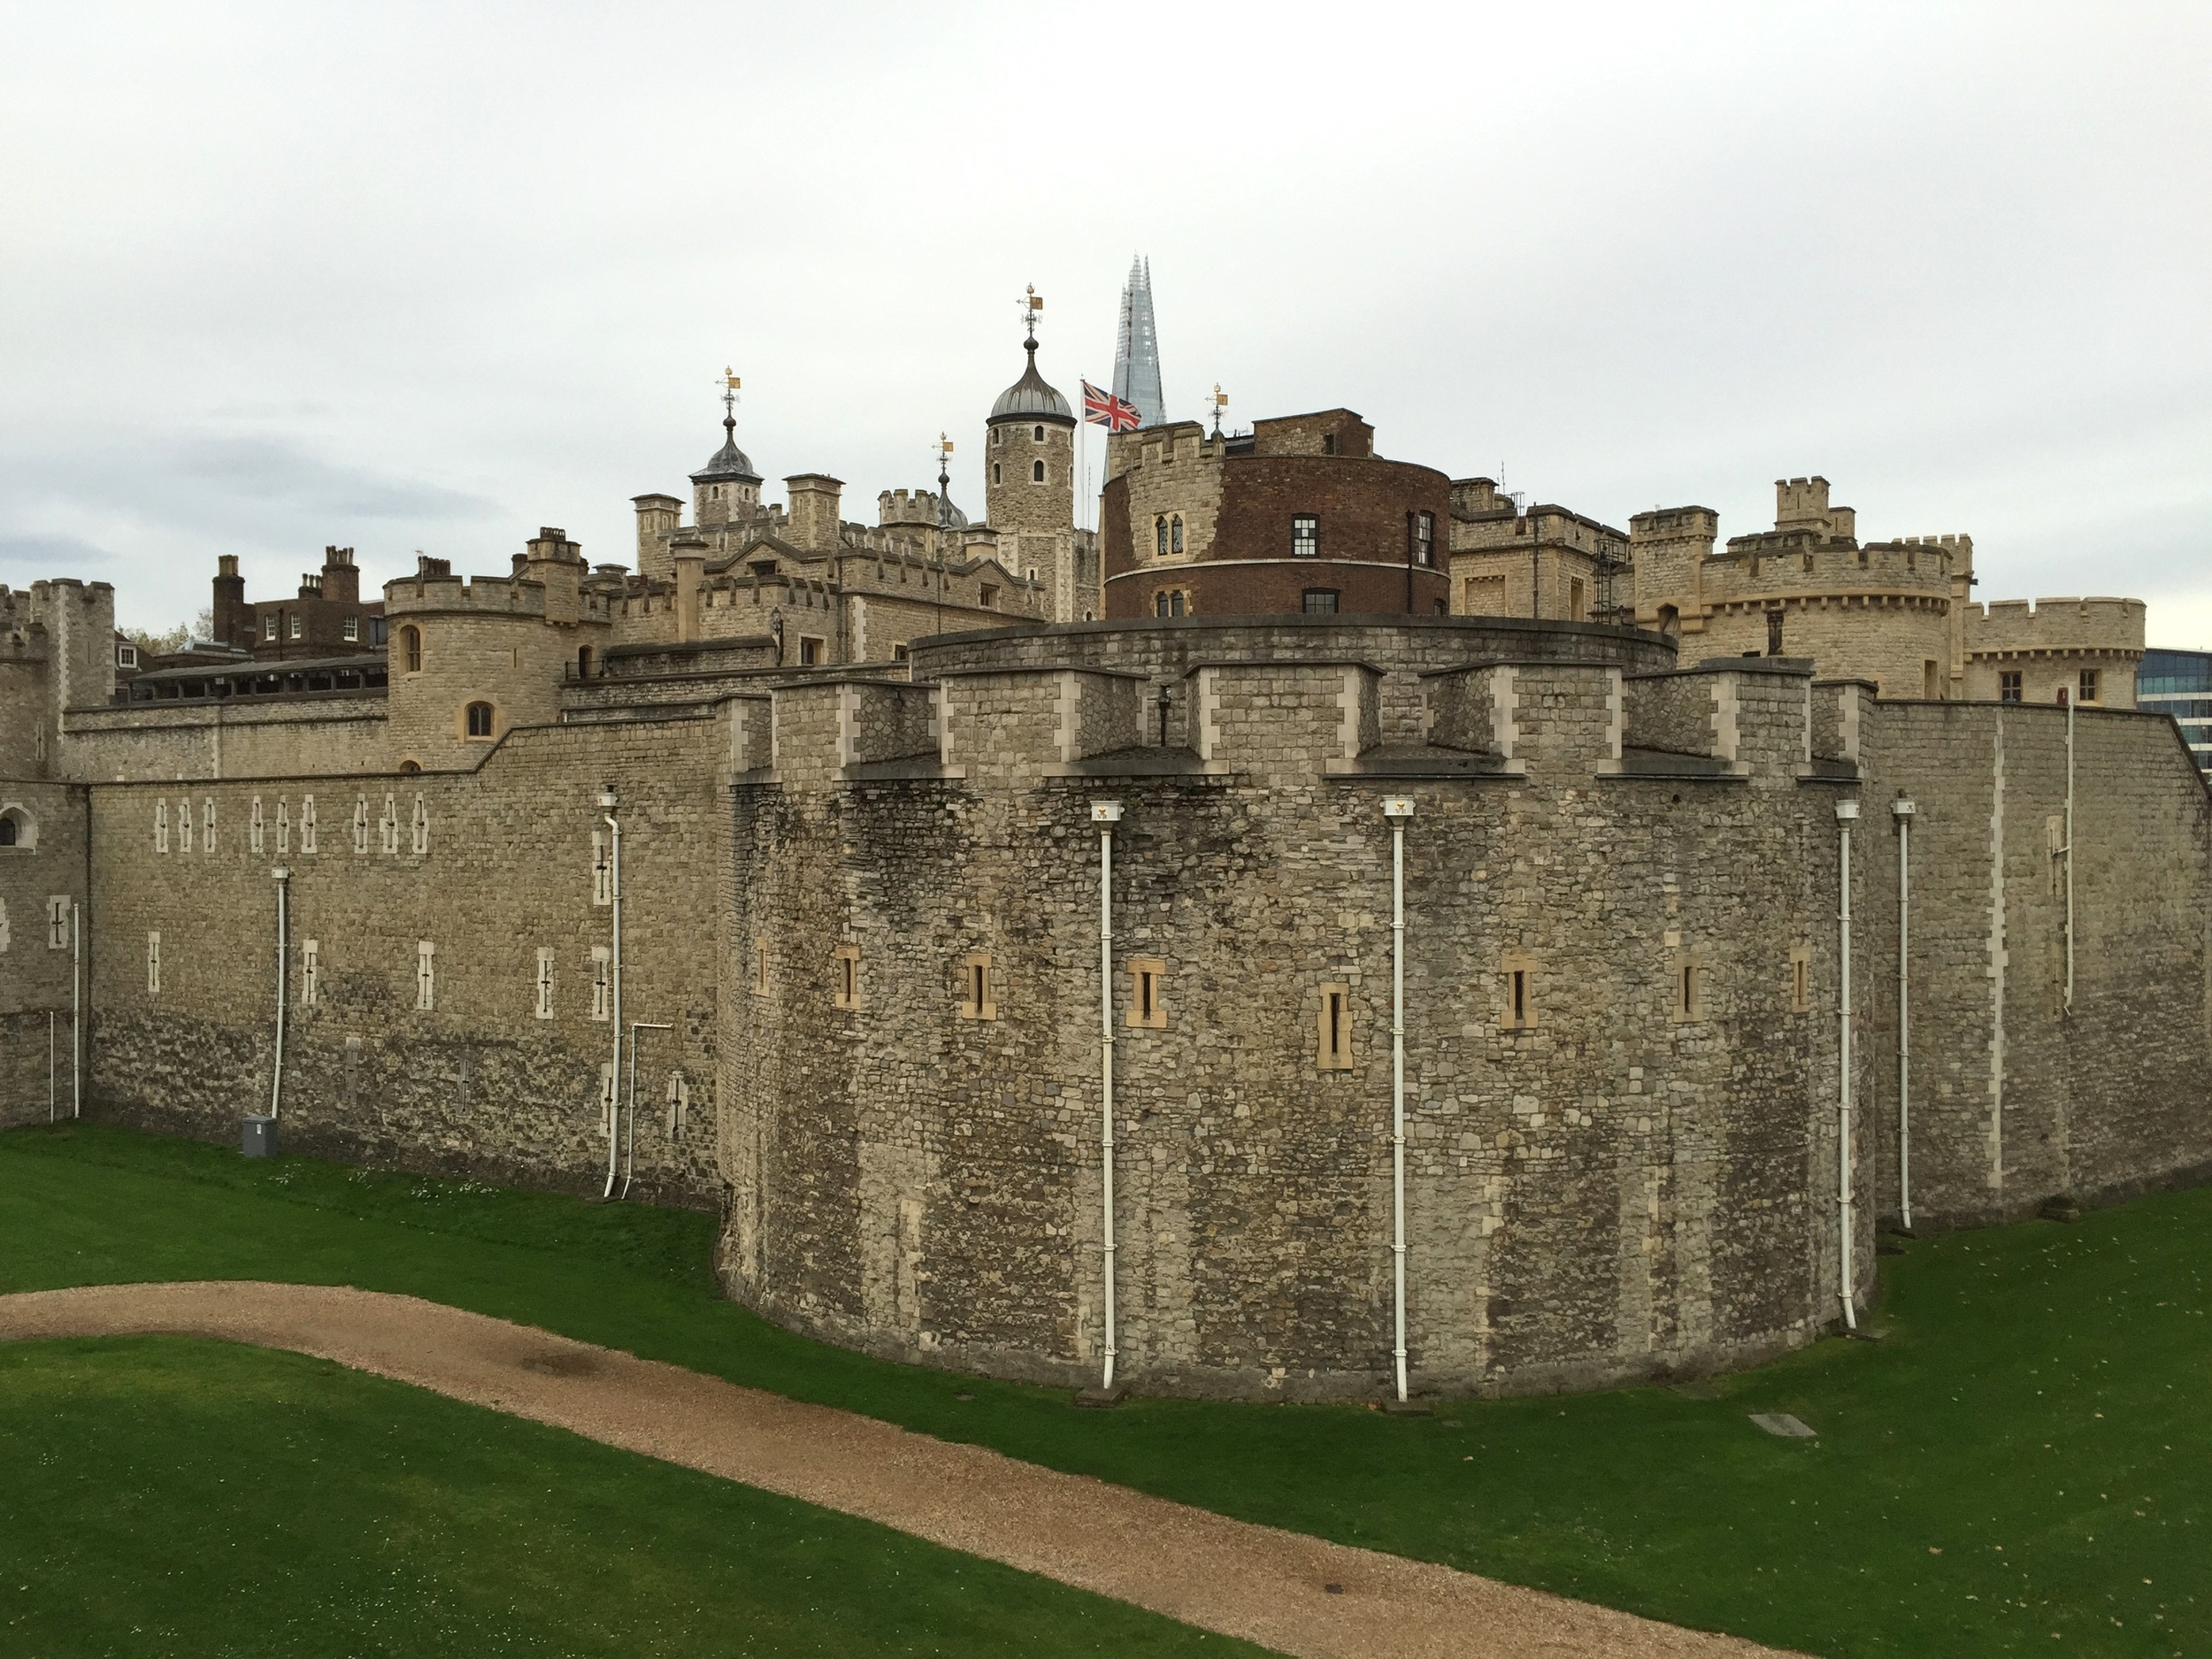 The Tower of London (where I'll spend much more time if I get to go again).